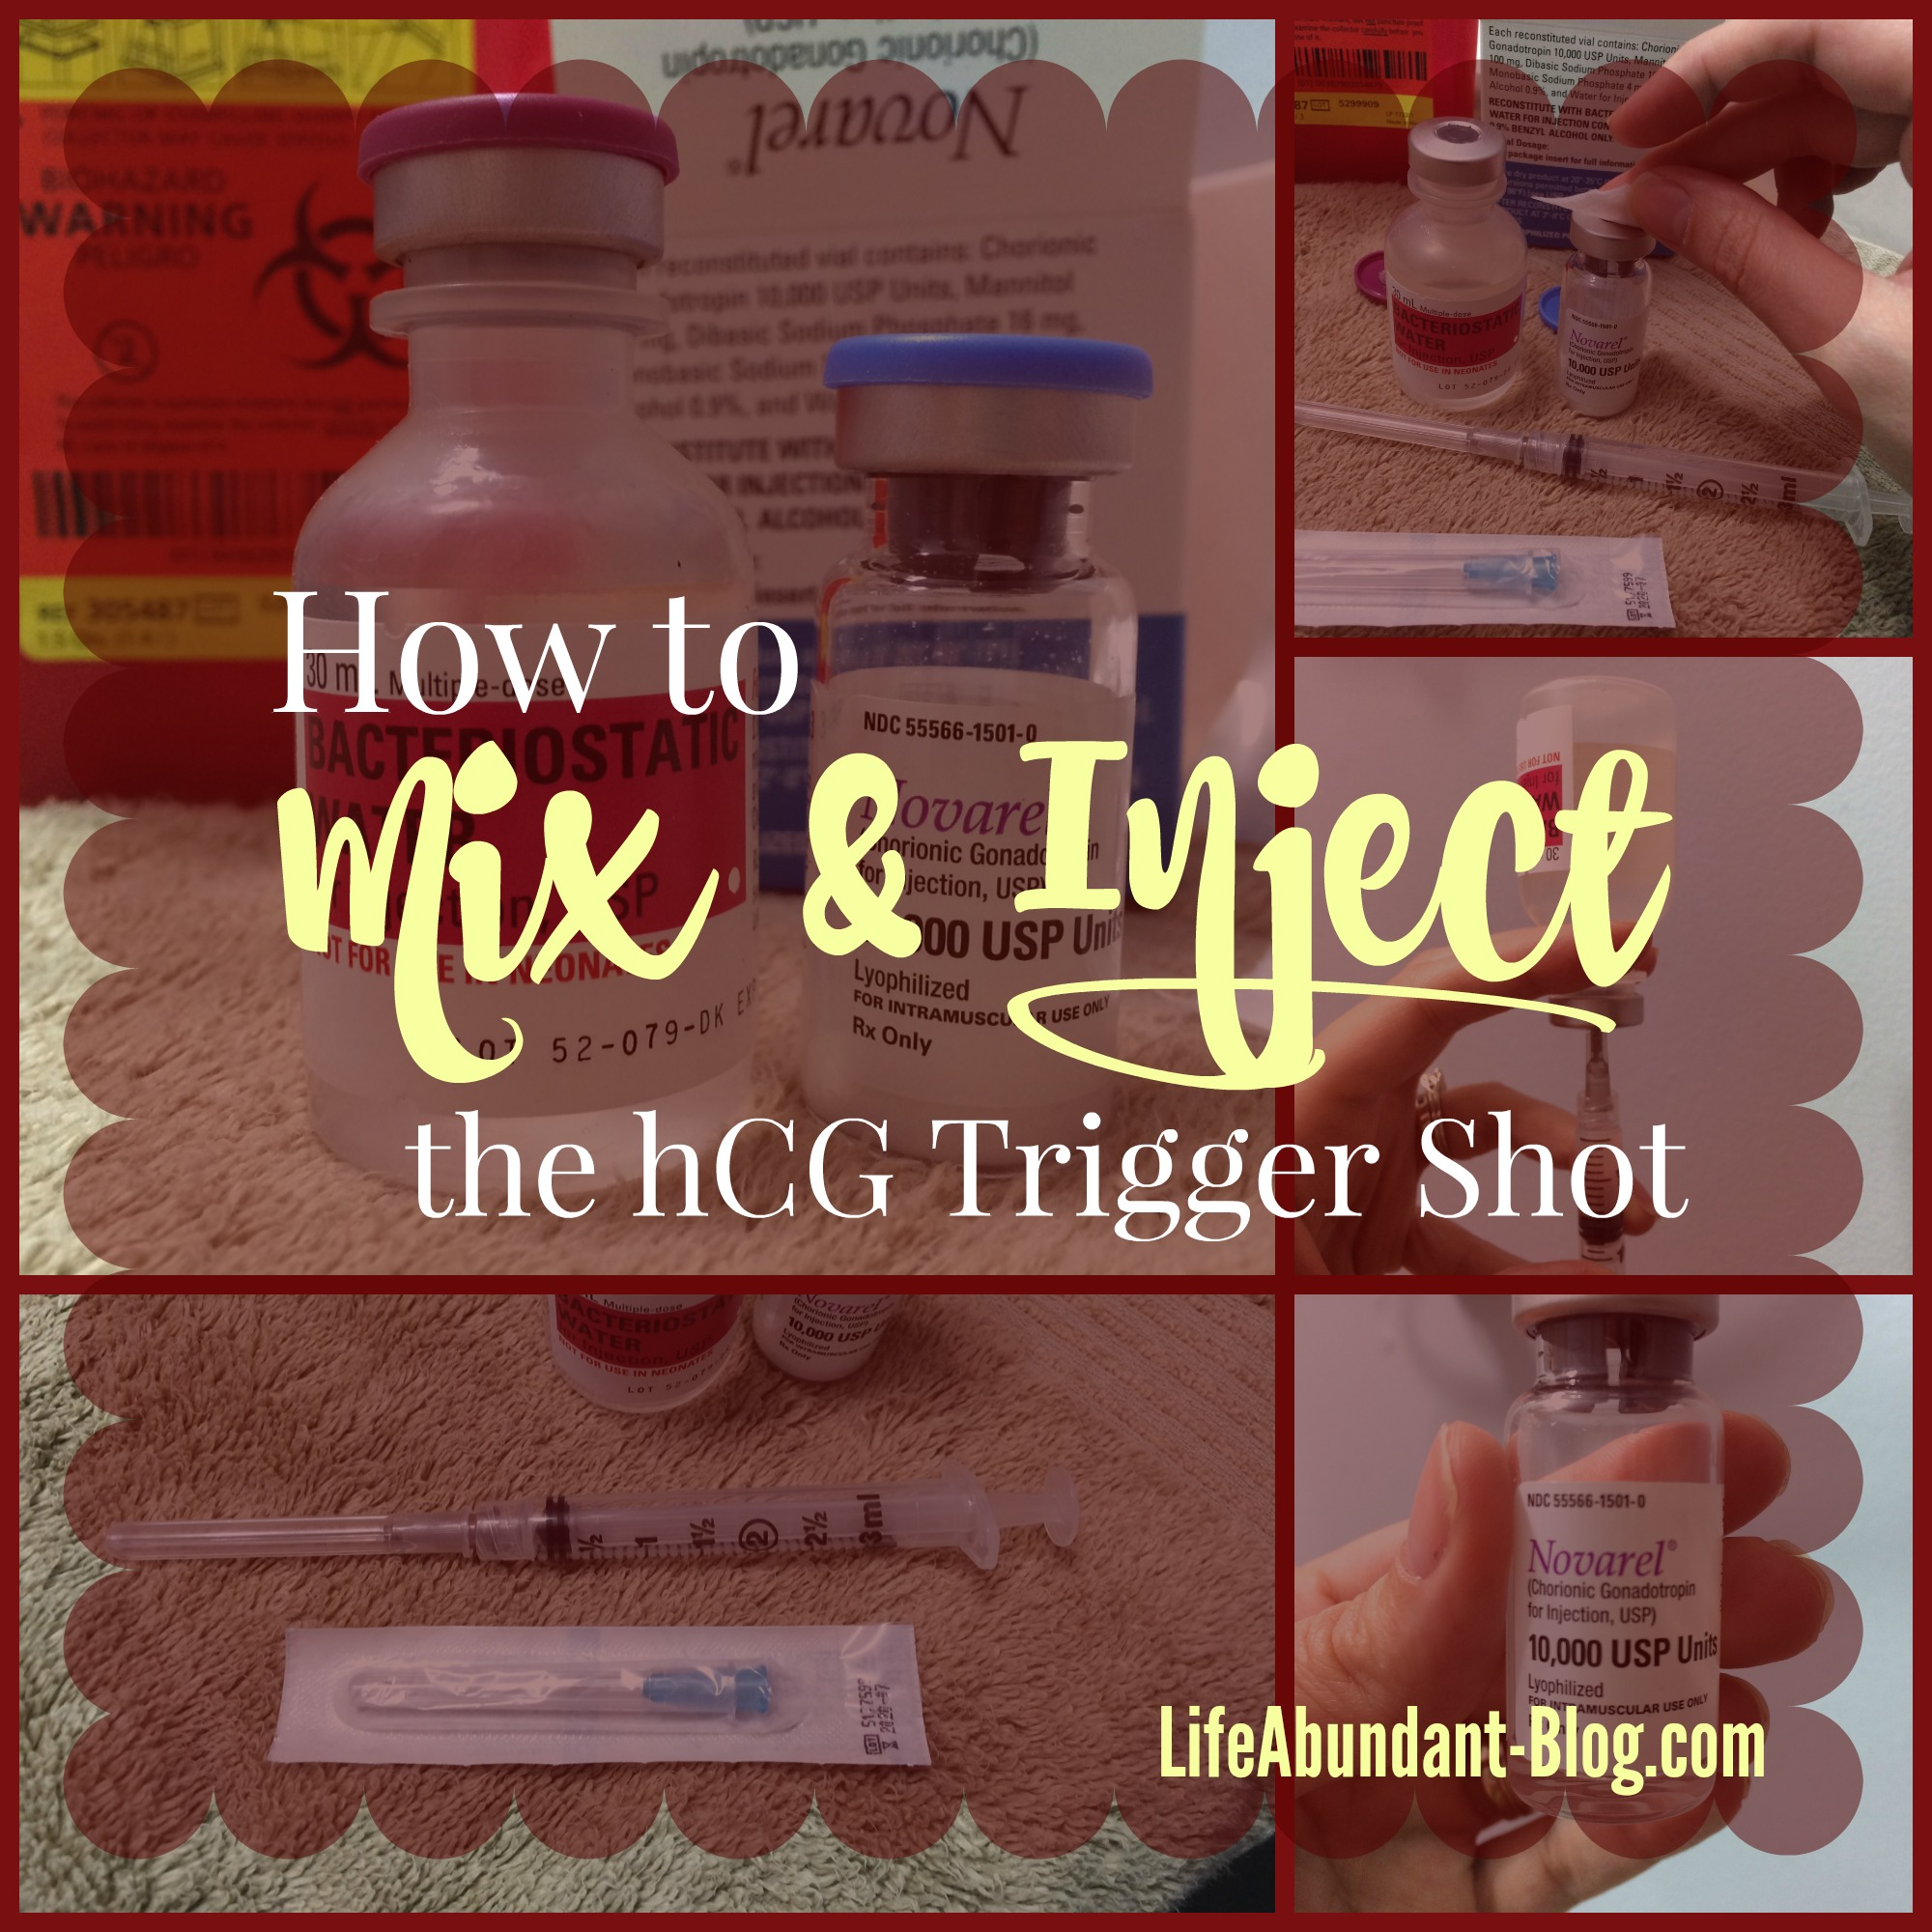 How to Inject Ovidrel foto